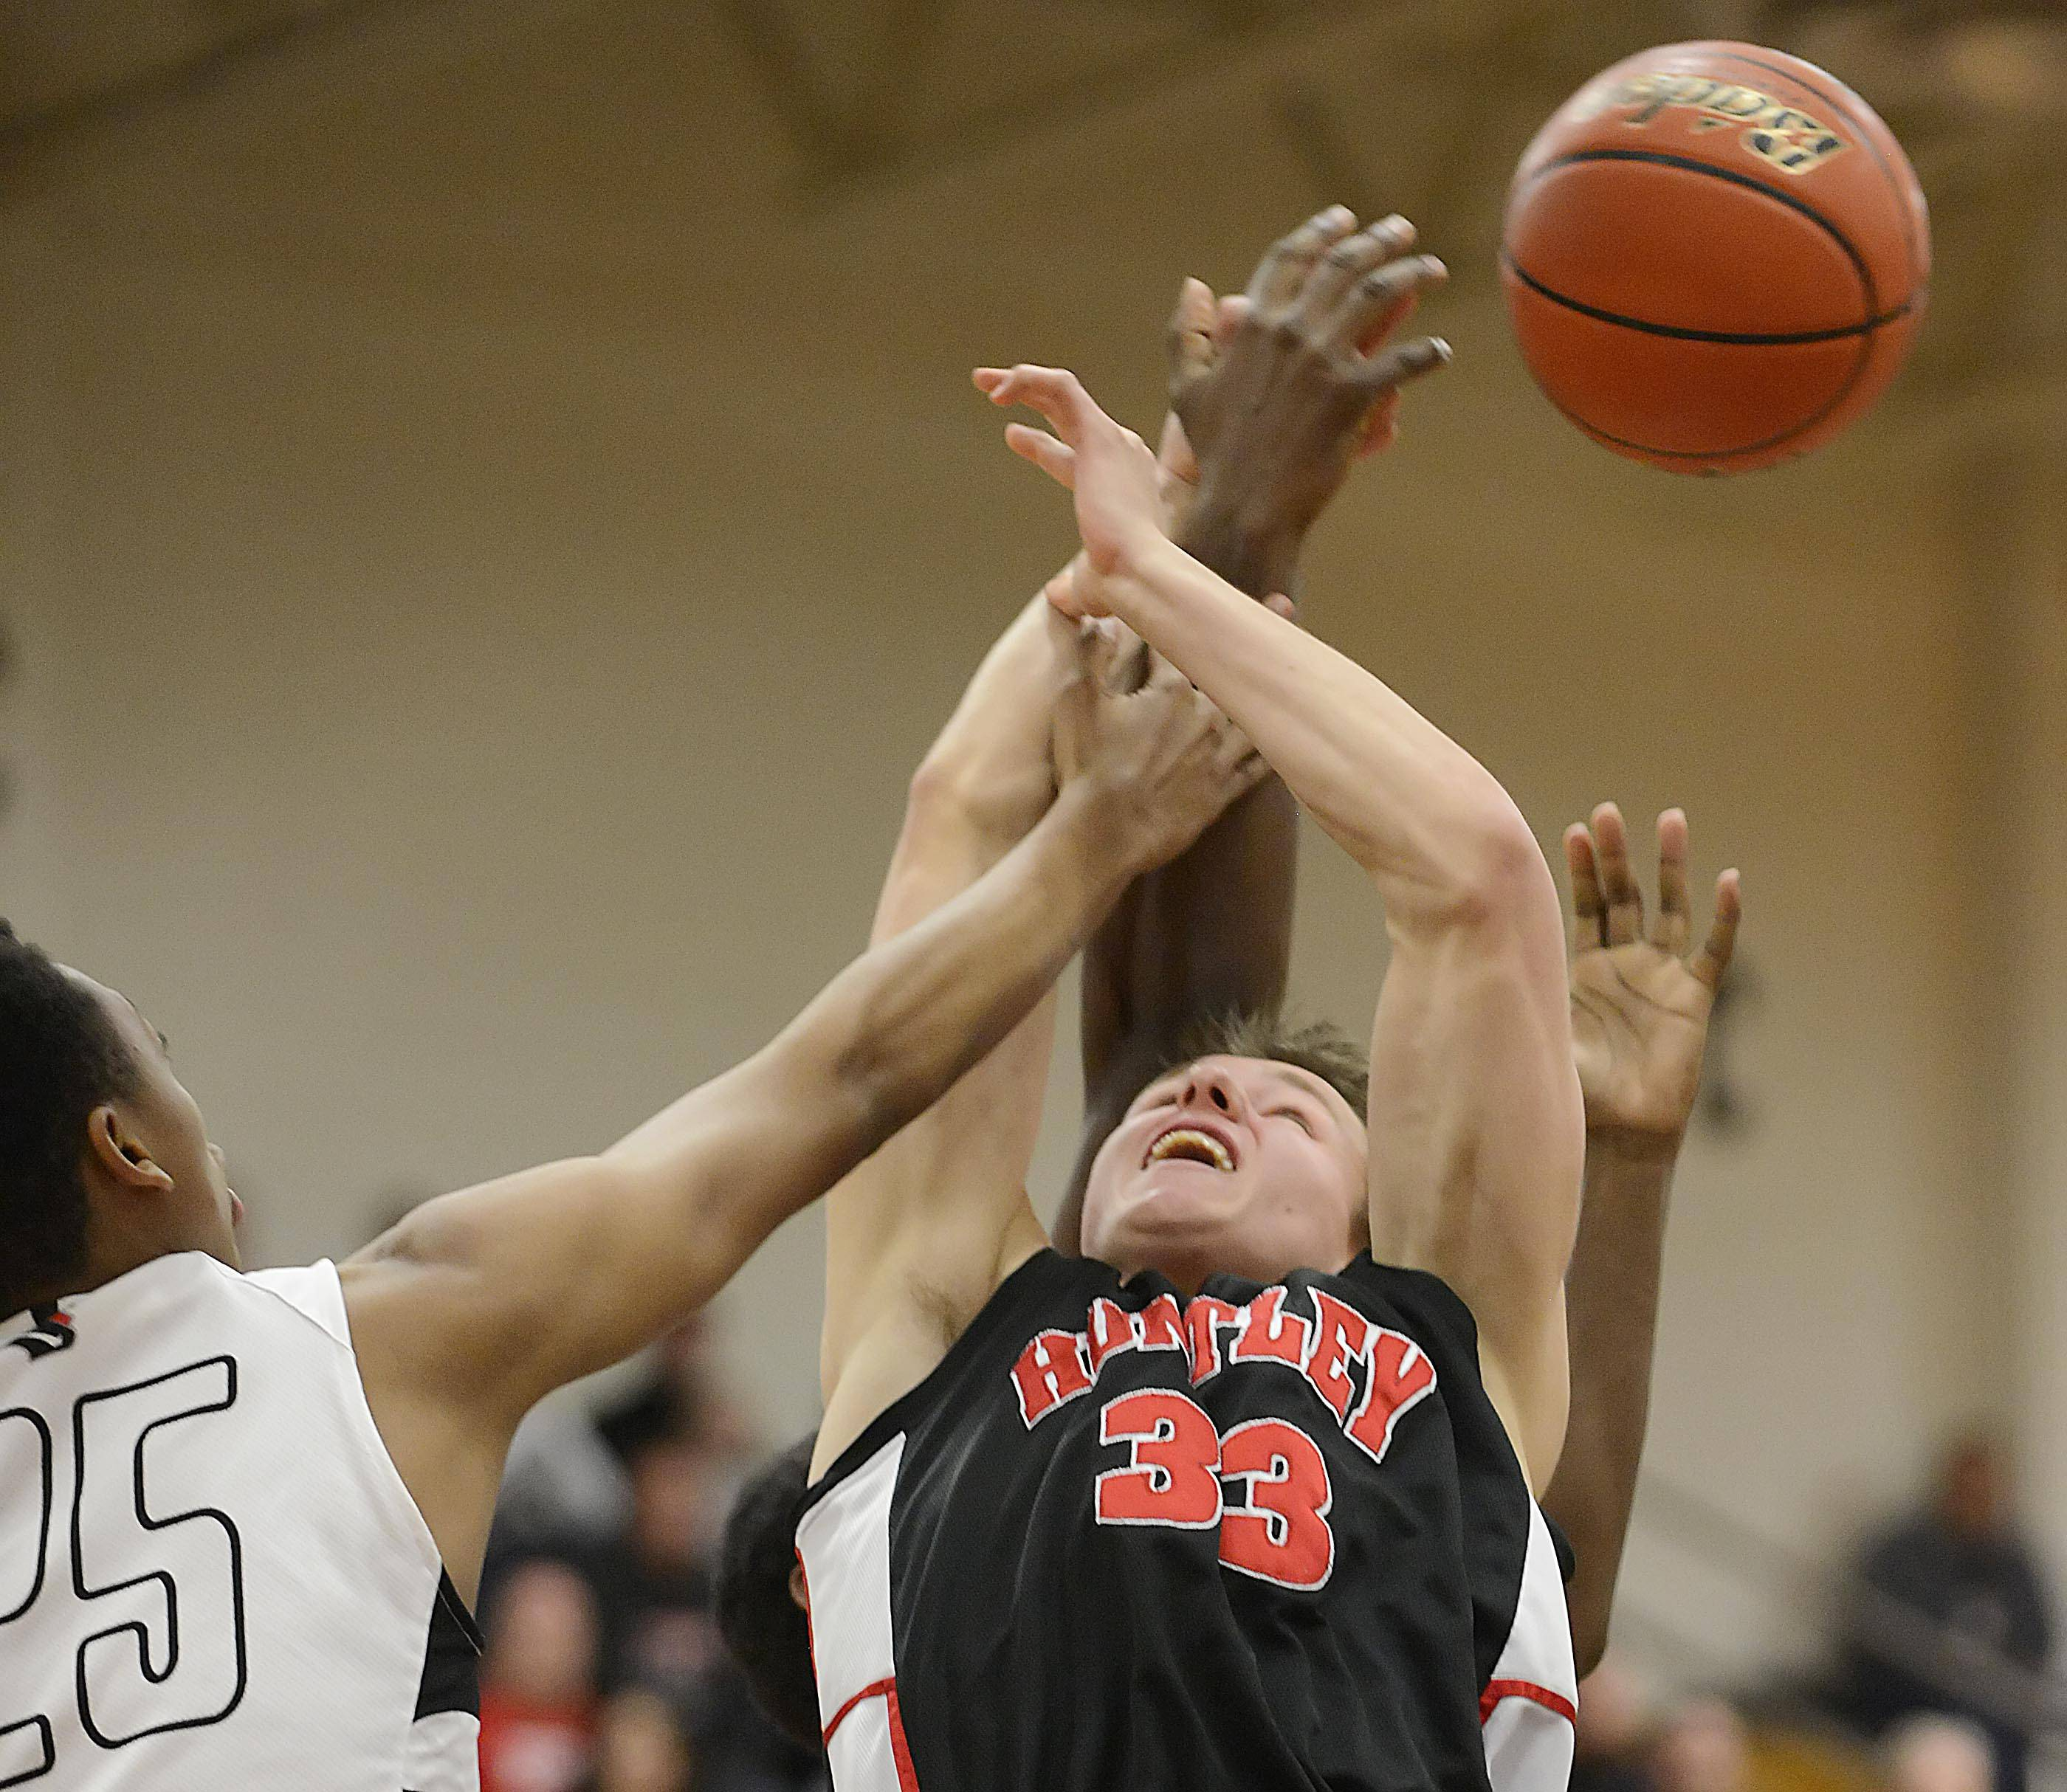 Huntley's Zach Gorney can't control a rebound against Rockford Auburn's defense in the Class 4A Elgin sectional semifinal Tuesday.